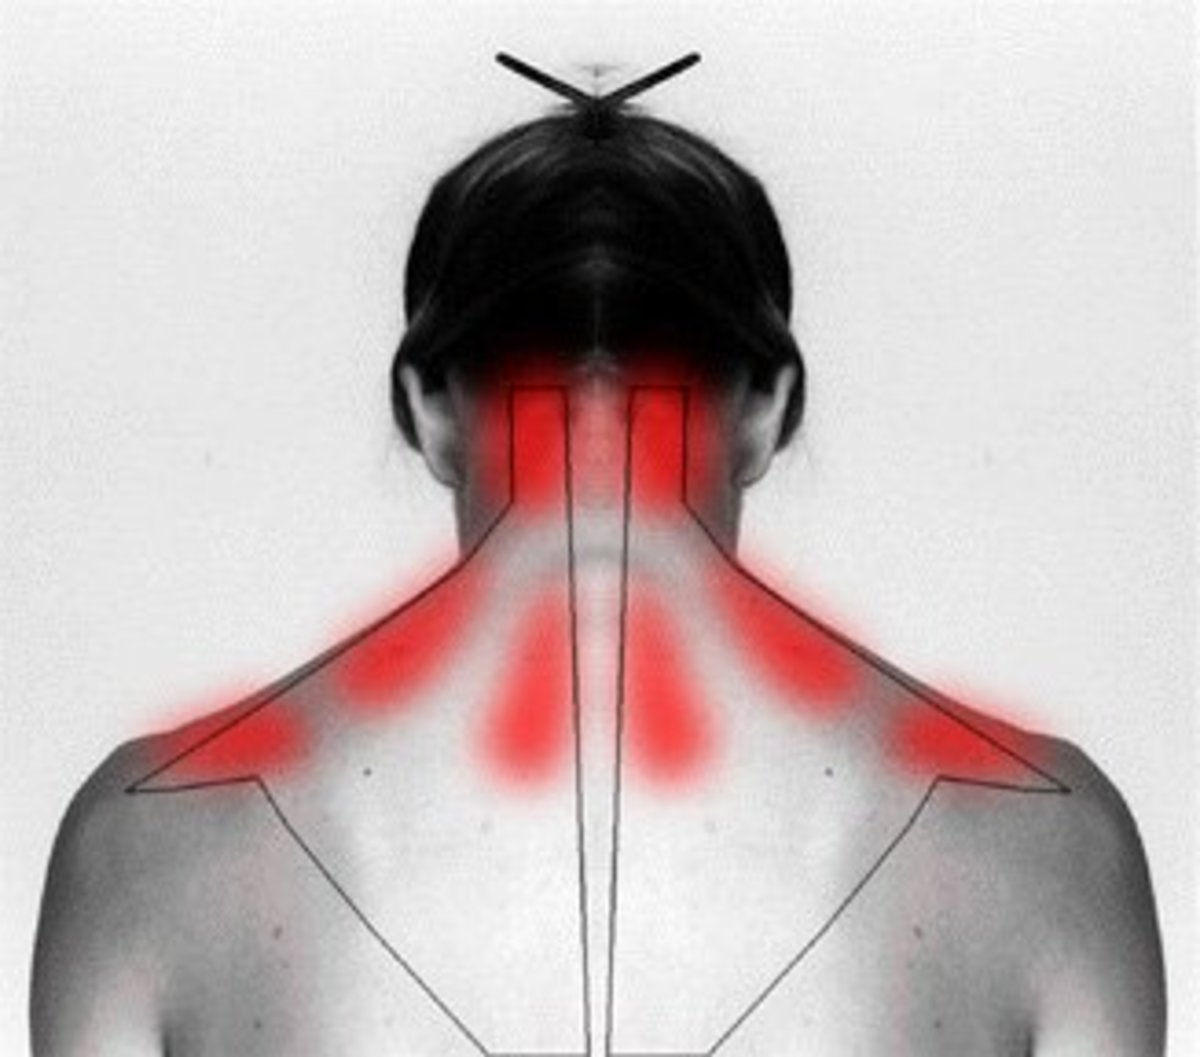 How to Treat and Cure Your Stiff Neck or Shoulder to Ease the Pain (in12 Easy Steps)